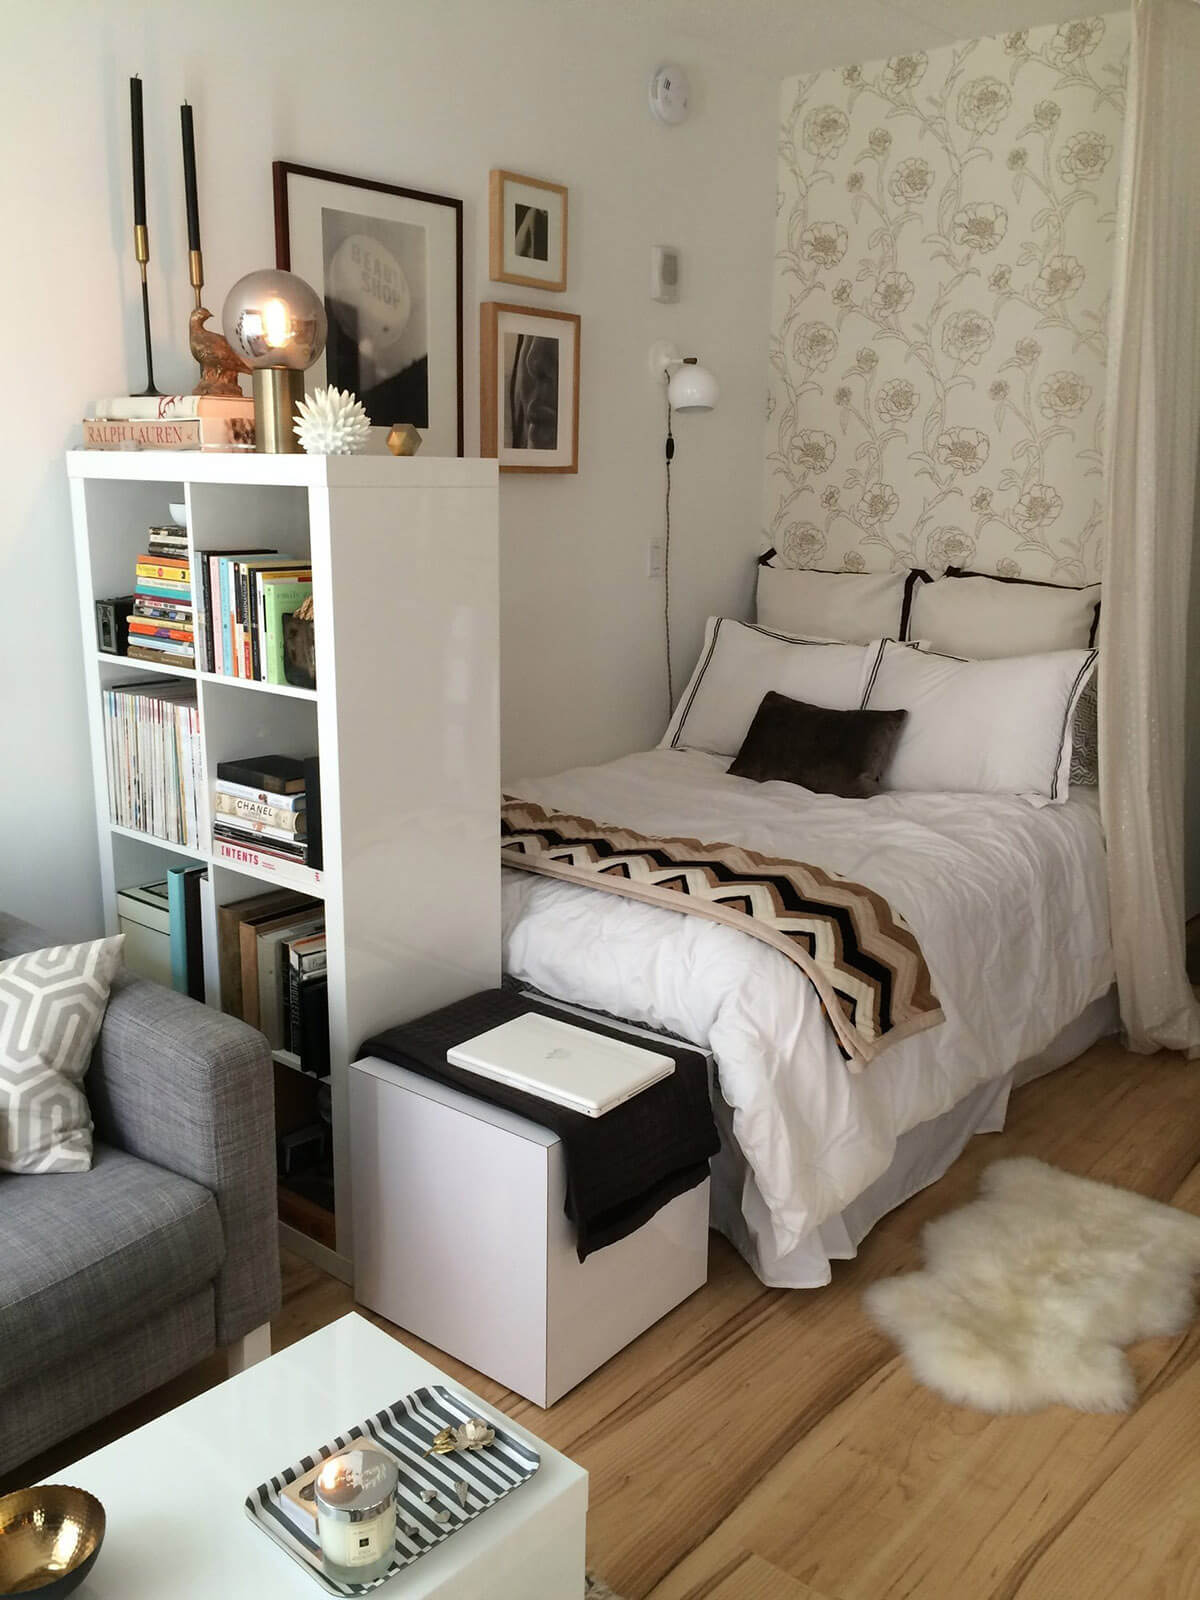 Charming Small Bedroom Ideas With A Tall Bookshelf